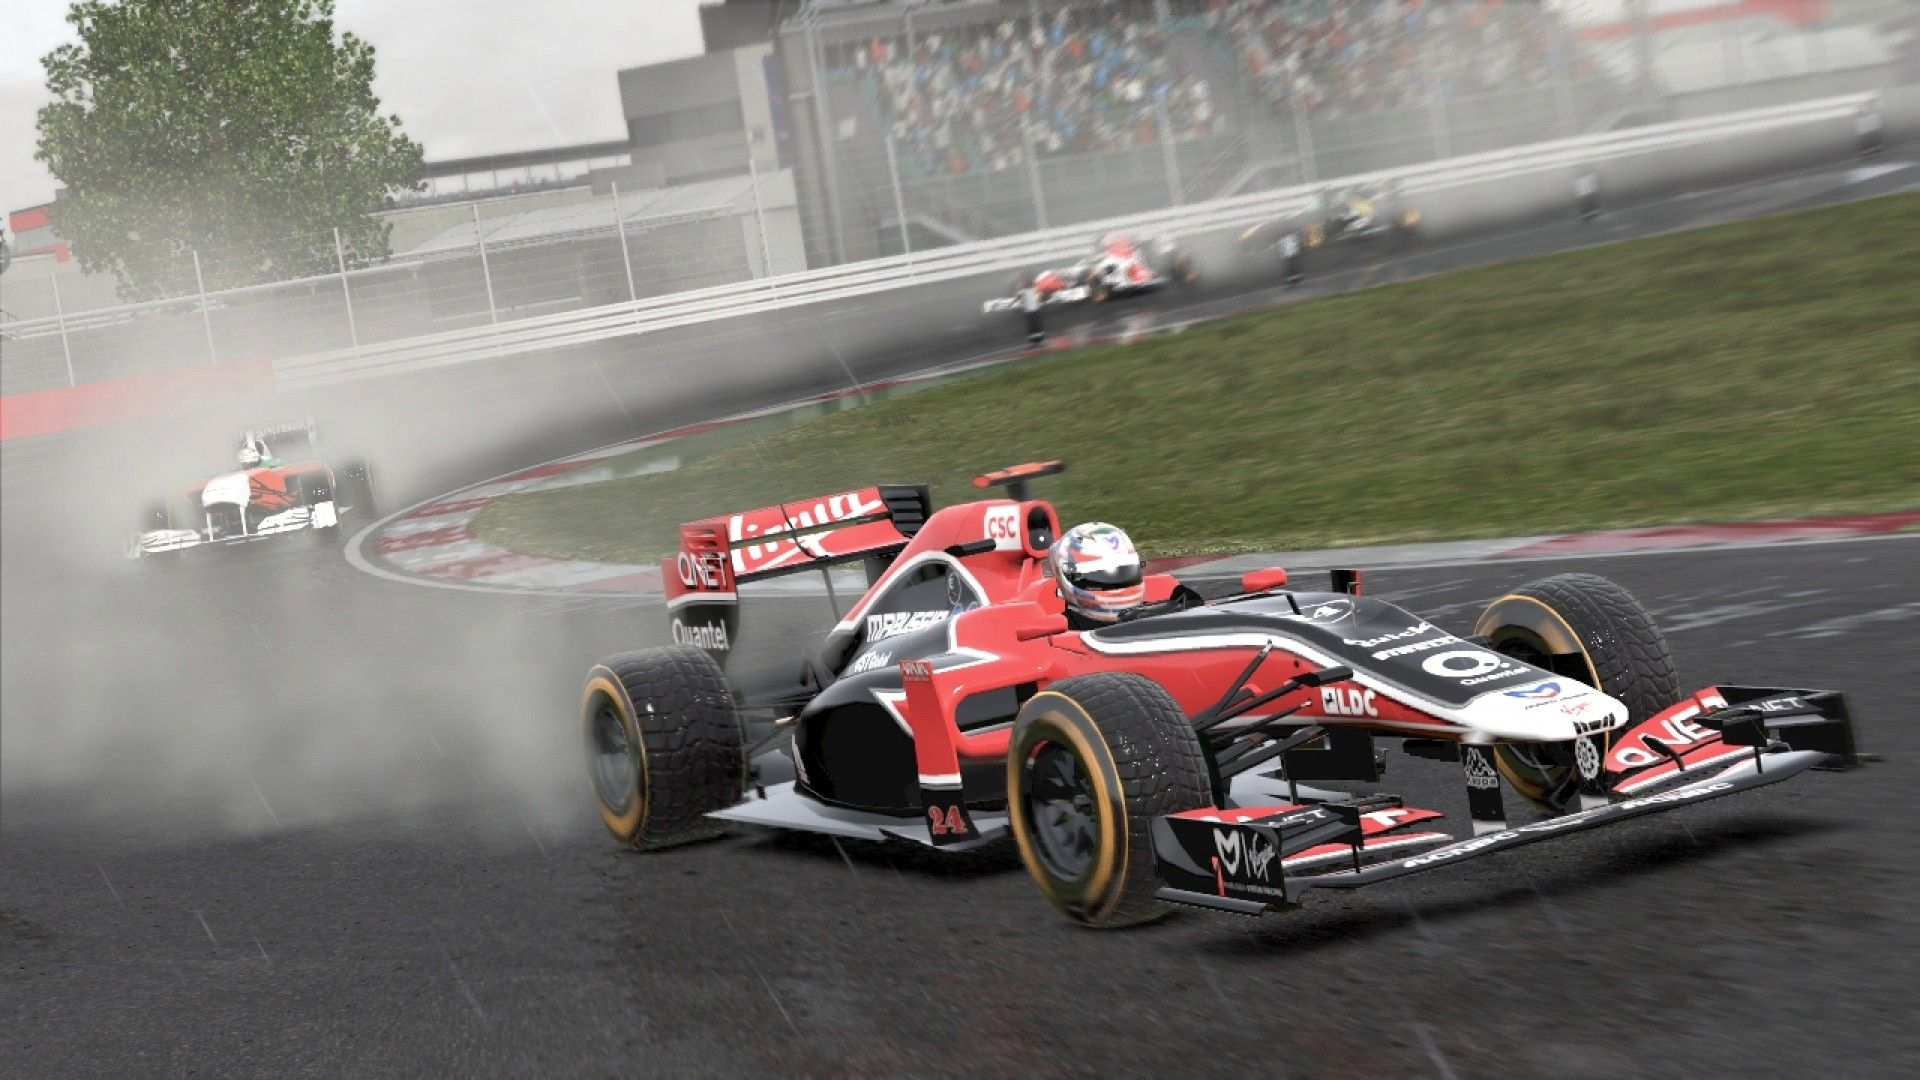 f1 2011 on steam rh store steampowered com F1 Helmet F1 Seating Position